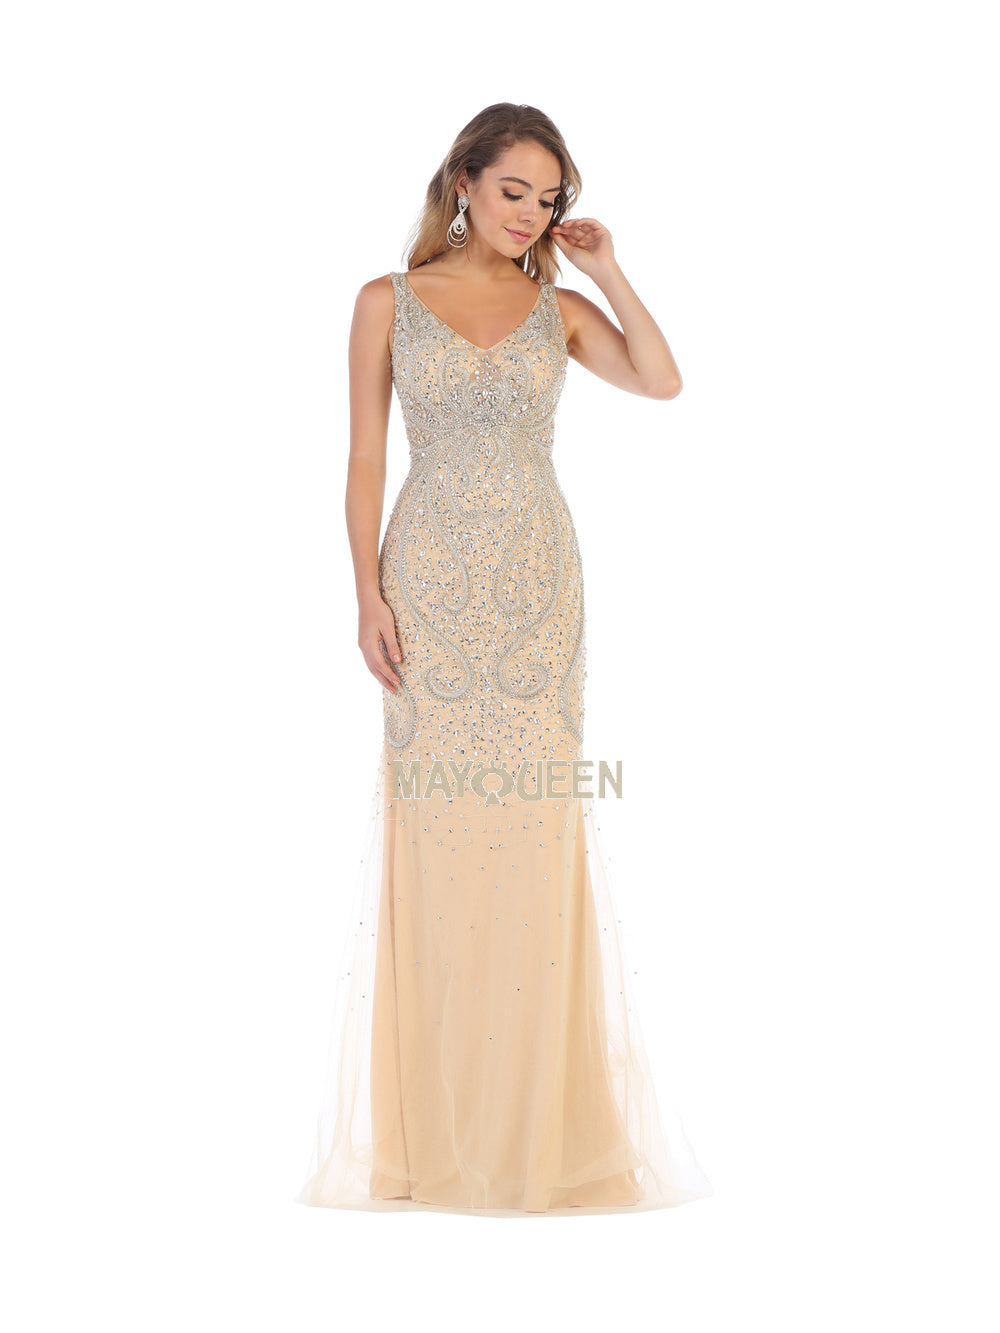 Mayqueen Size Chart E MQ 7650 - Embellished V-Neck Fitted Gown - Diggz Prom